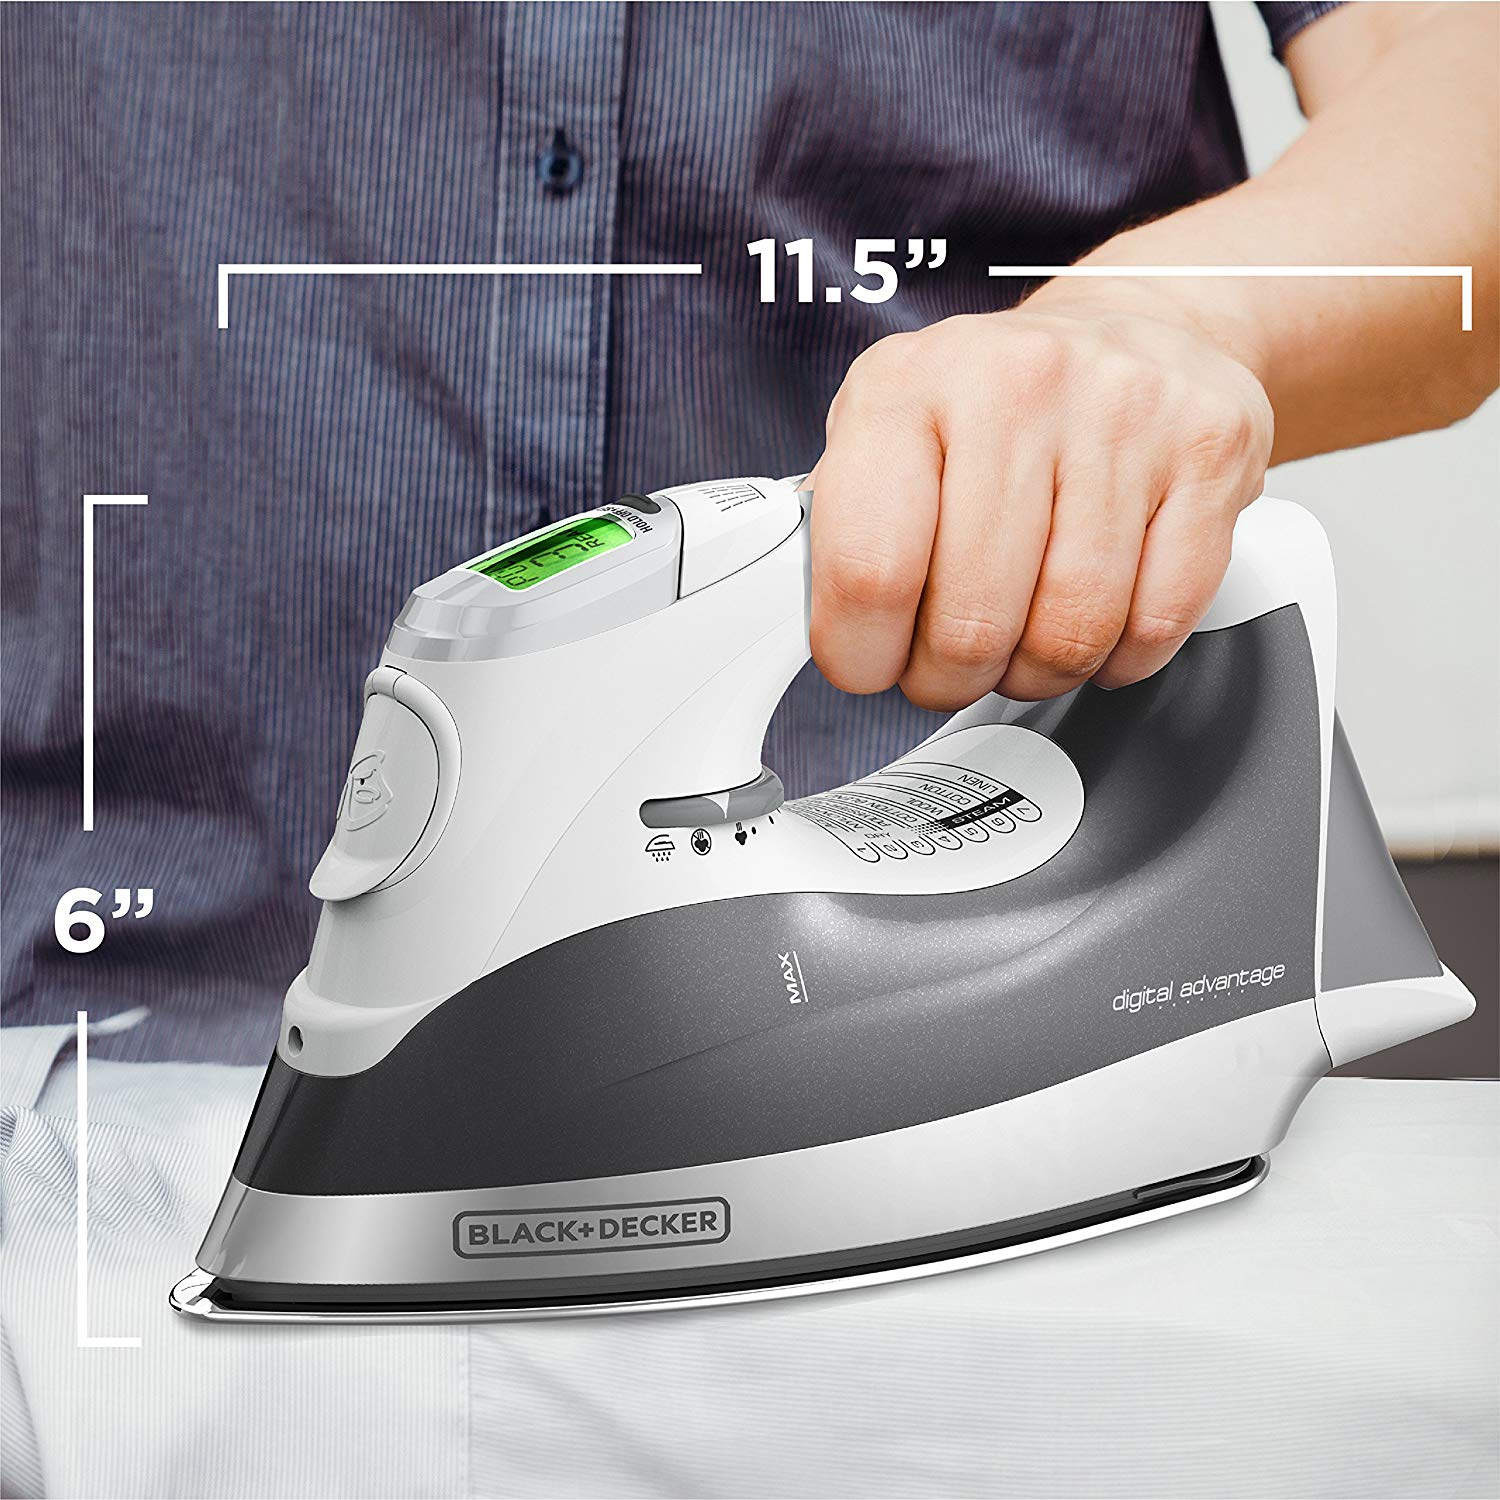 Best Iron For Sewing And Quilting Reviews